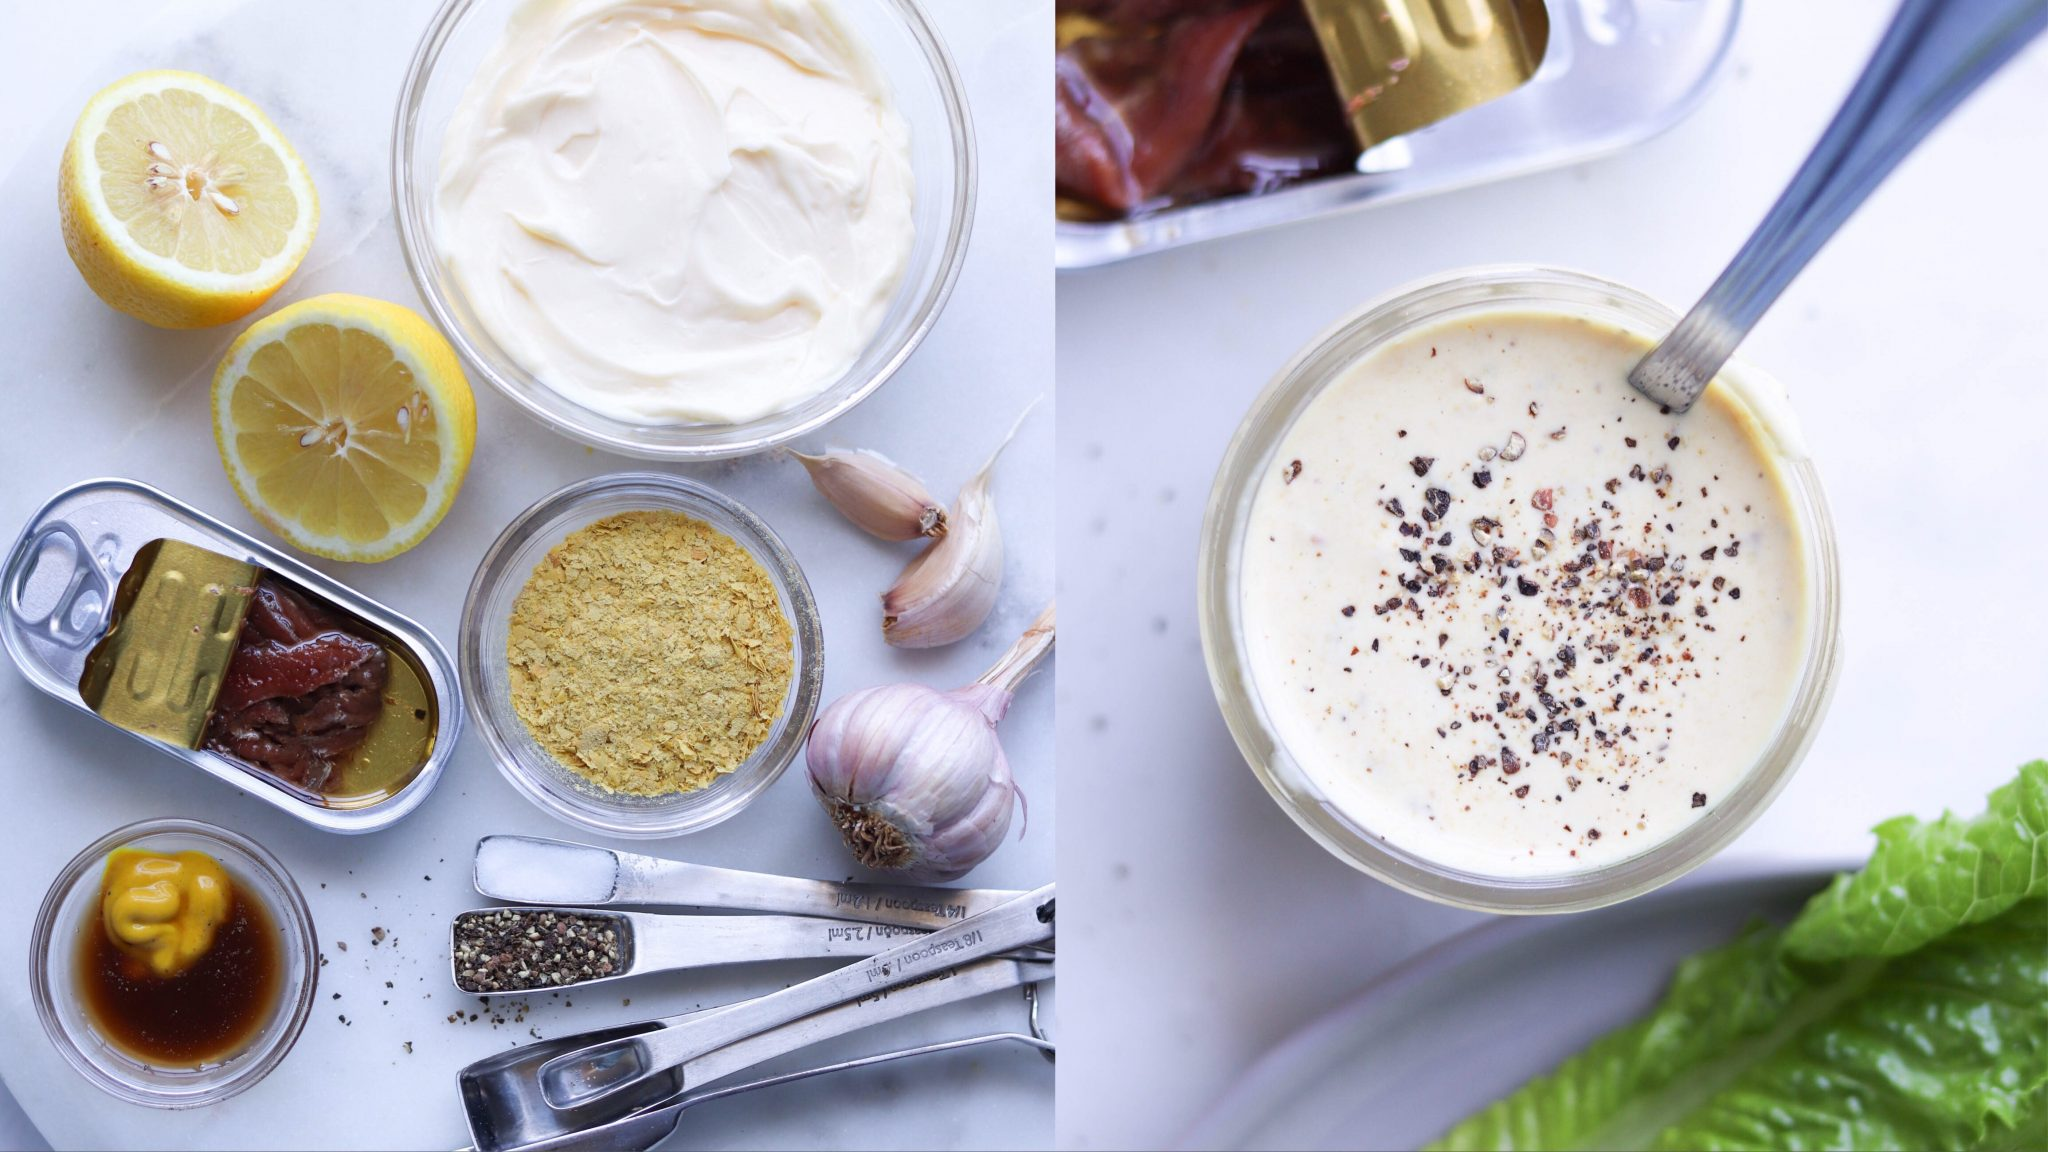 A collage showing all the ingredients for Whole30 Caesar Salad Dressing laid out - garlic, mayo, lemon, nutritional yeast, anchovies, salt and pepper. The second image shows the completed Caesar salad dressing in a small glass mason jar with black pepper sprinkled on top and a stainless steel spoon for serving.